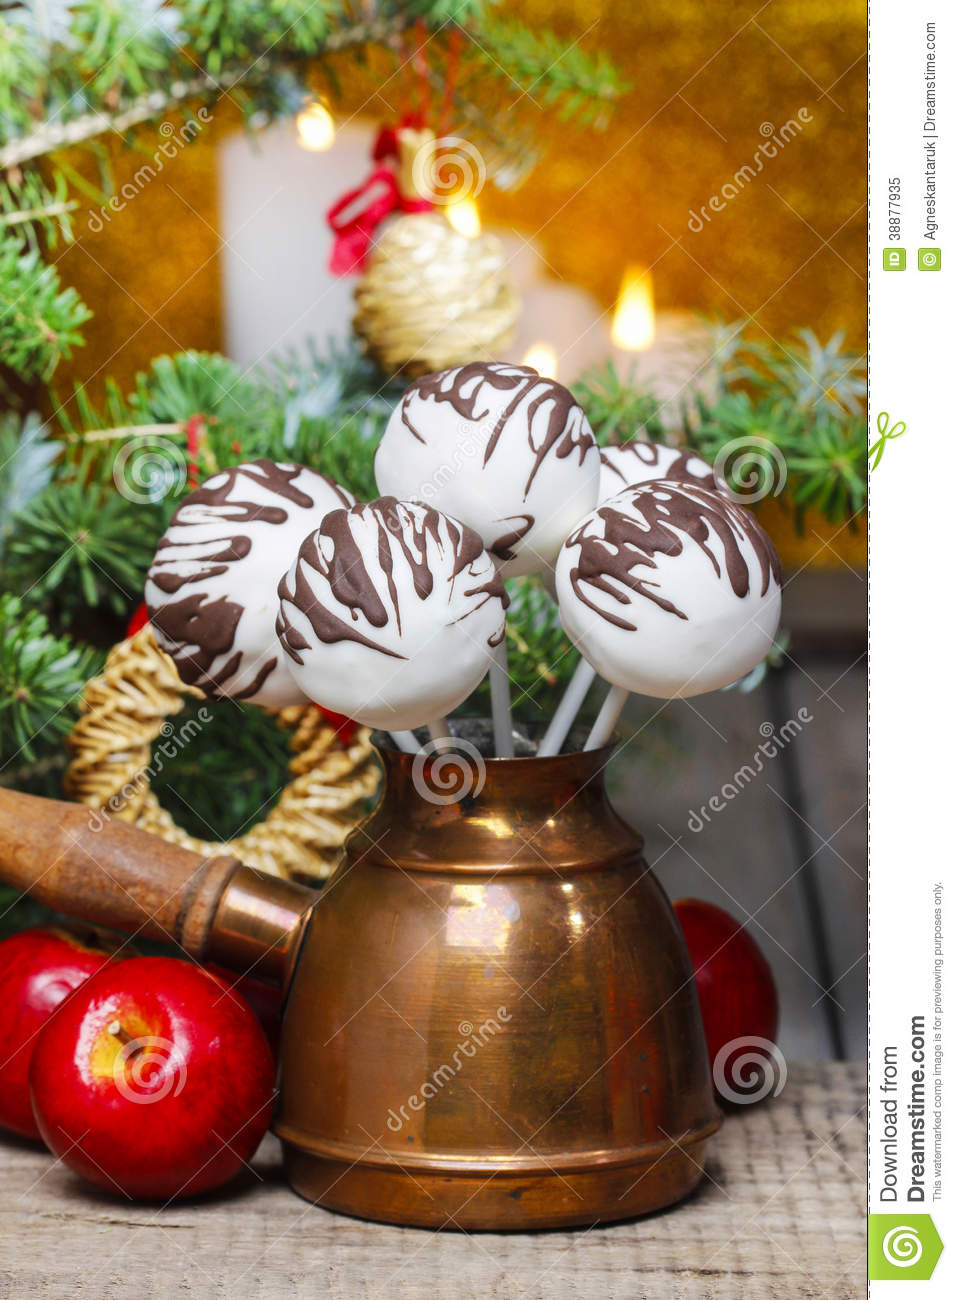 Chocolate Balls Cake Decoration : Chocolate Cake Pops In Christmas Setting Stock Photo ...